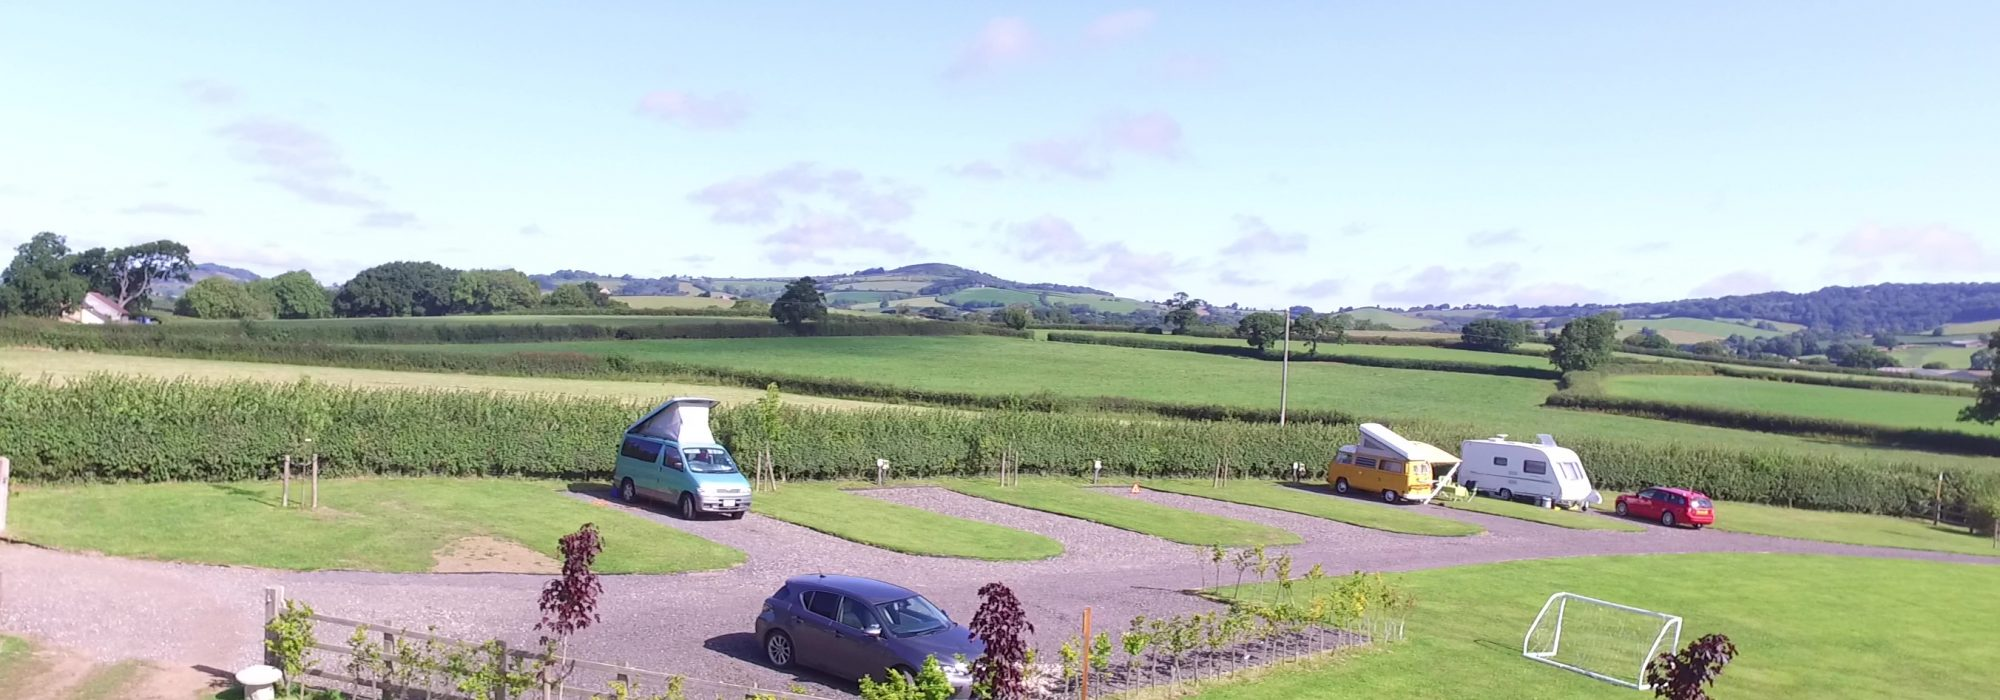 5 pitches and parking and view